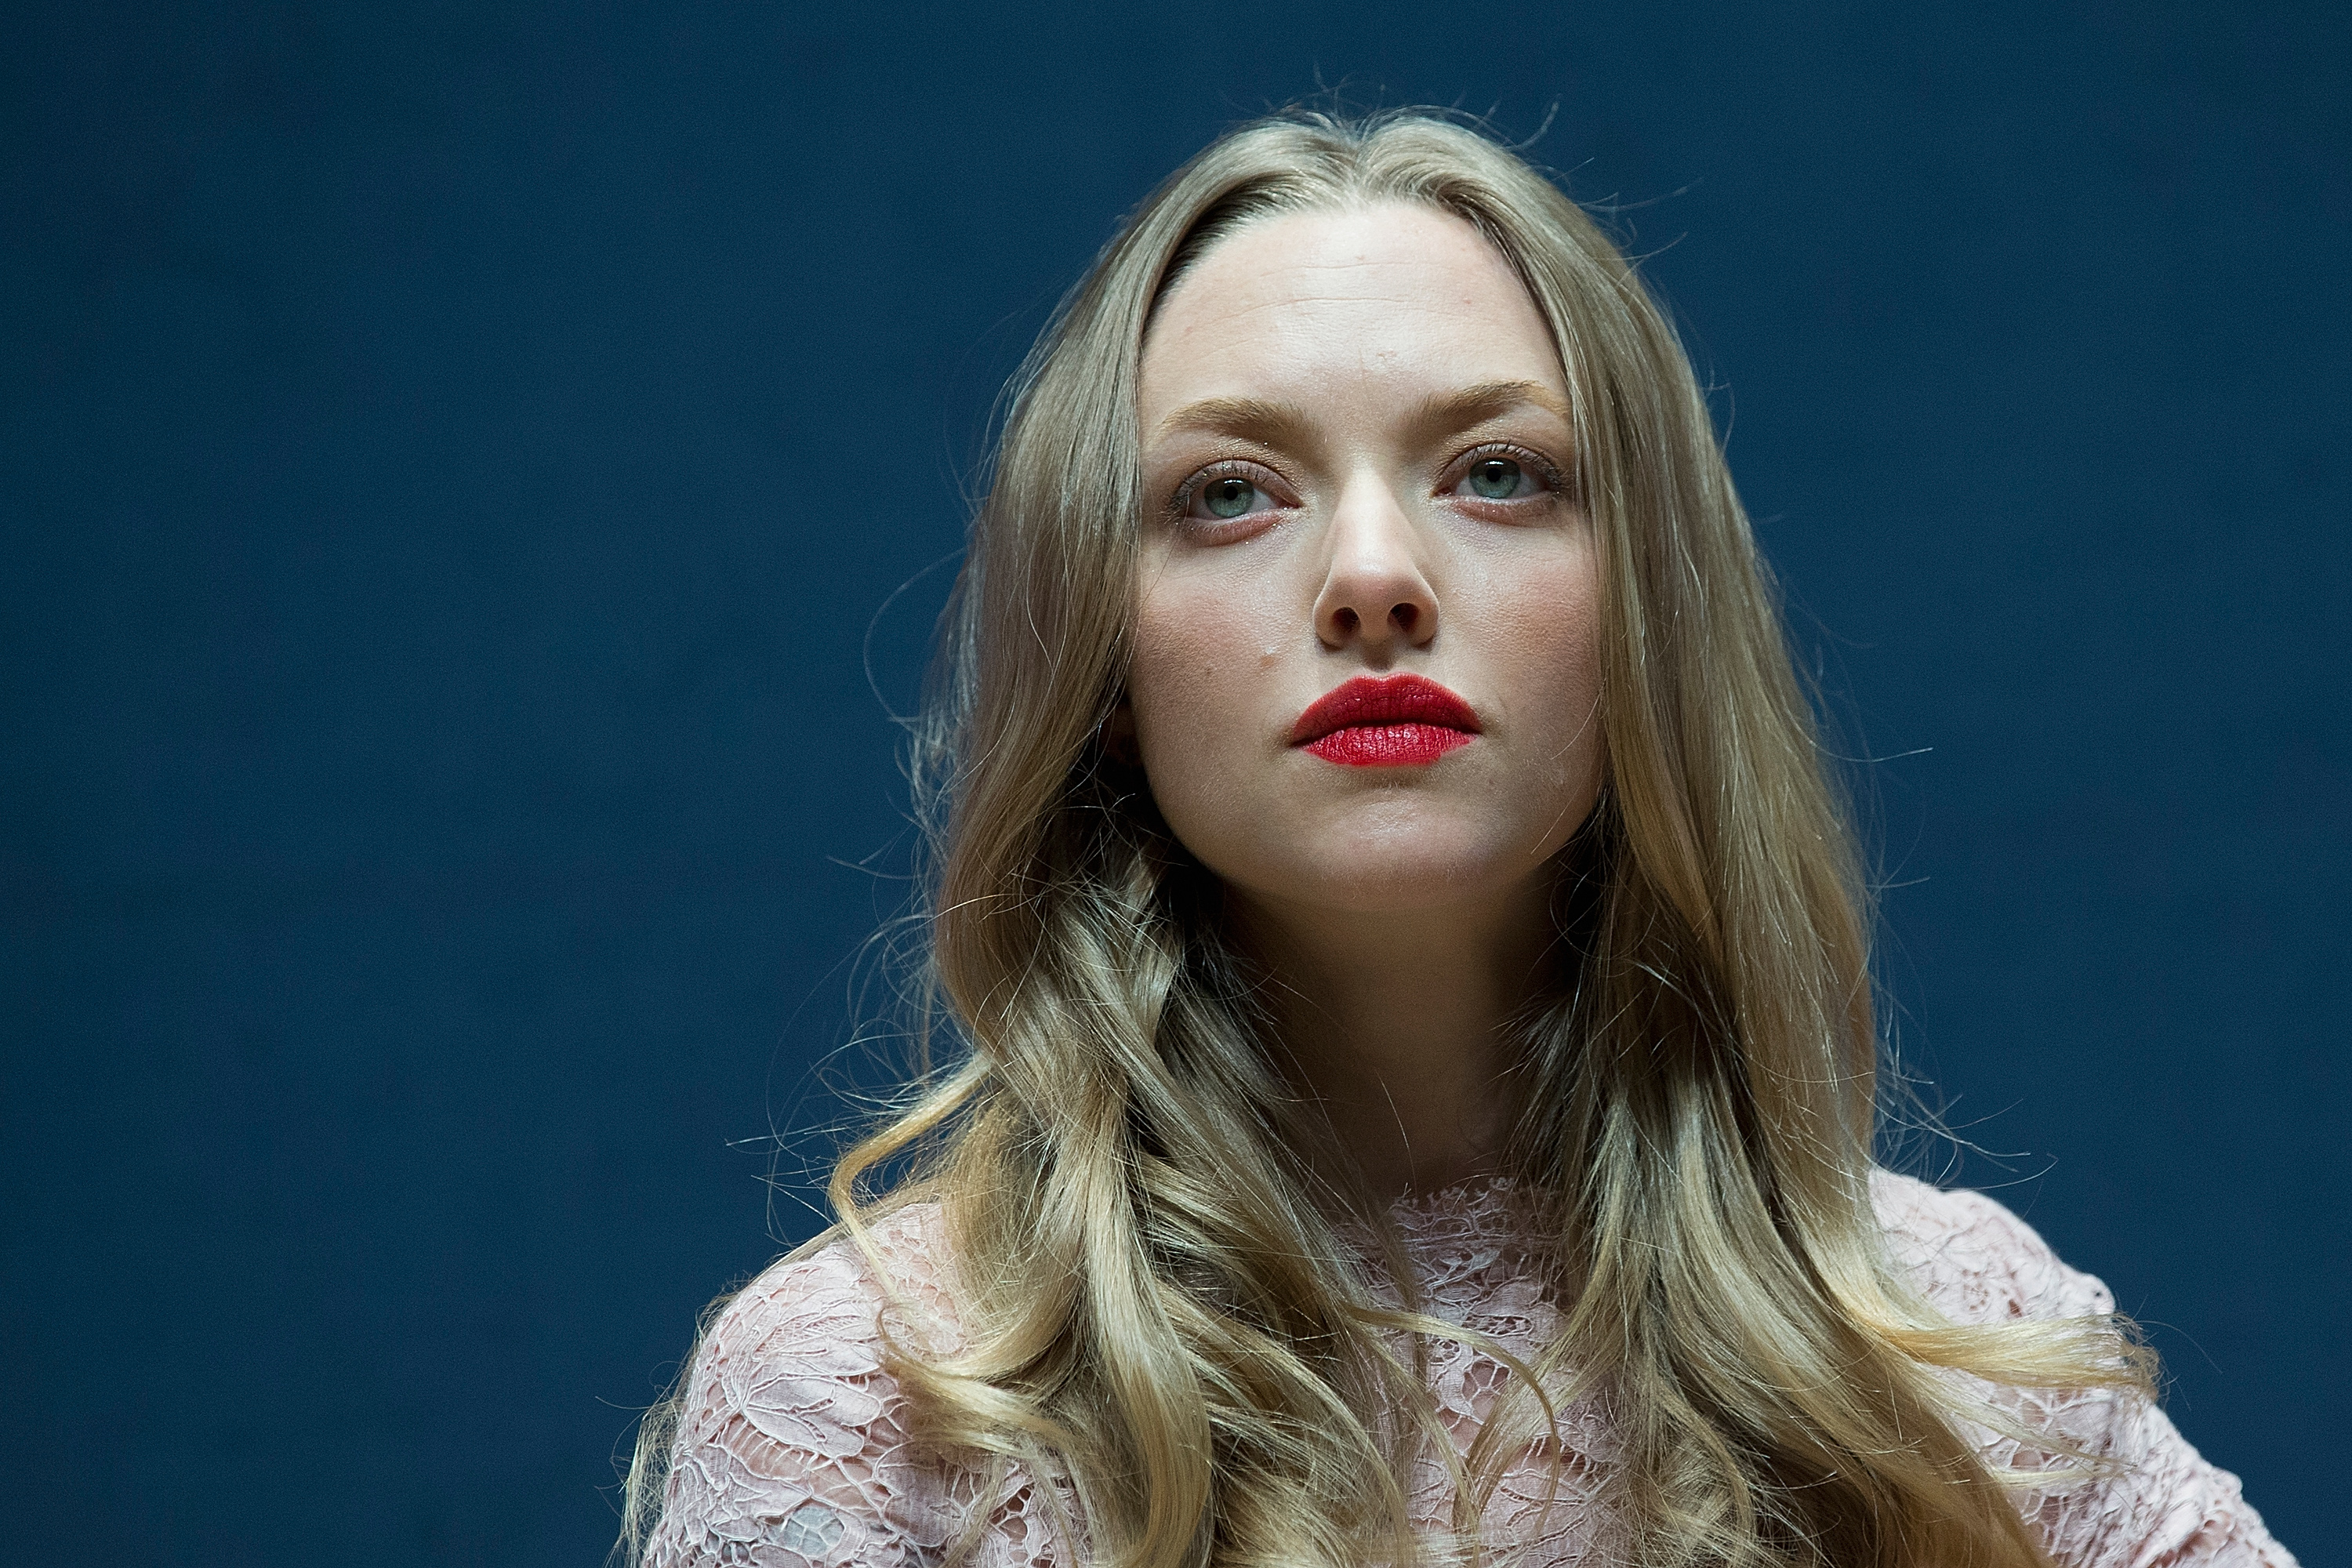 Amanda Seyfried attends the press conference at RAUM on December 4, 2013 in Seoul, South Korea.